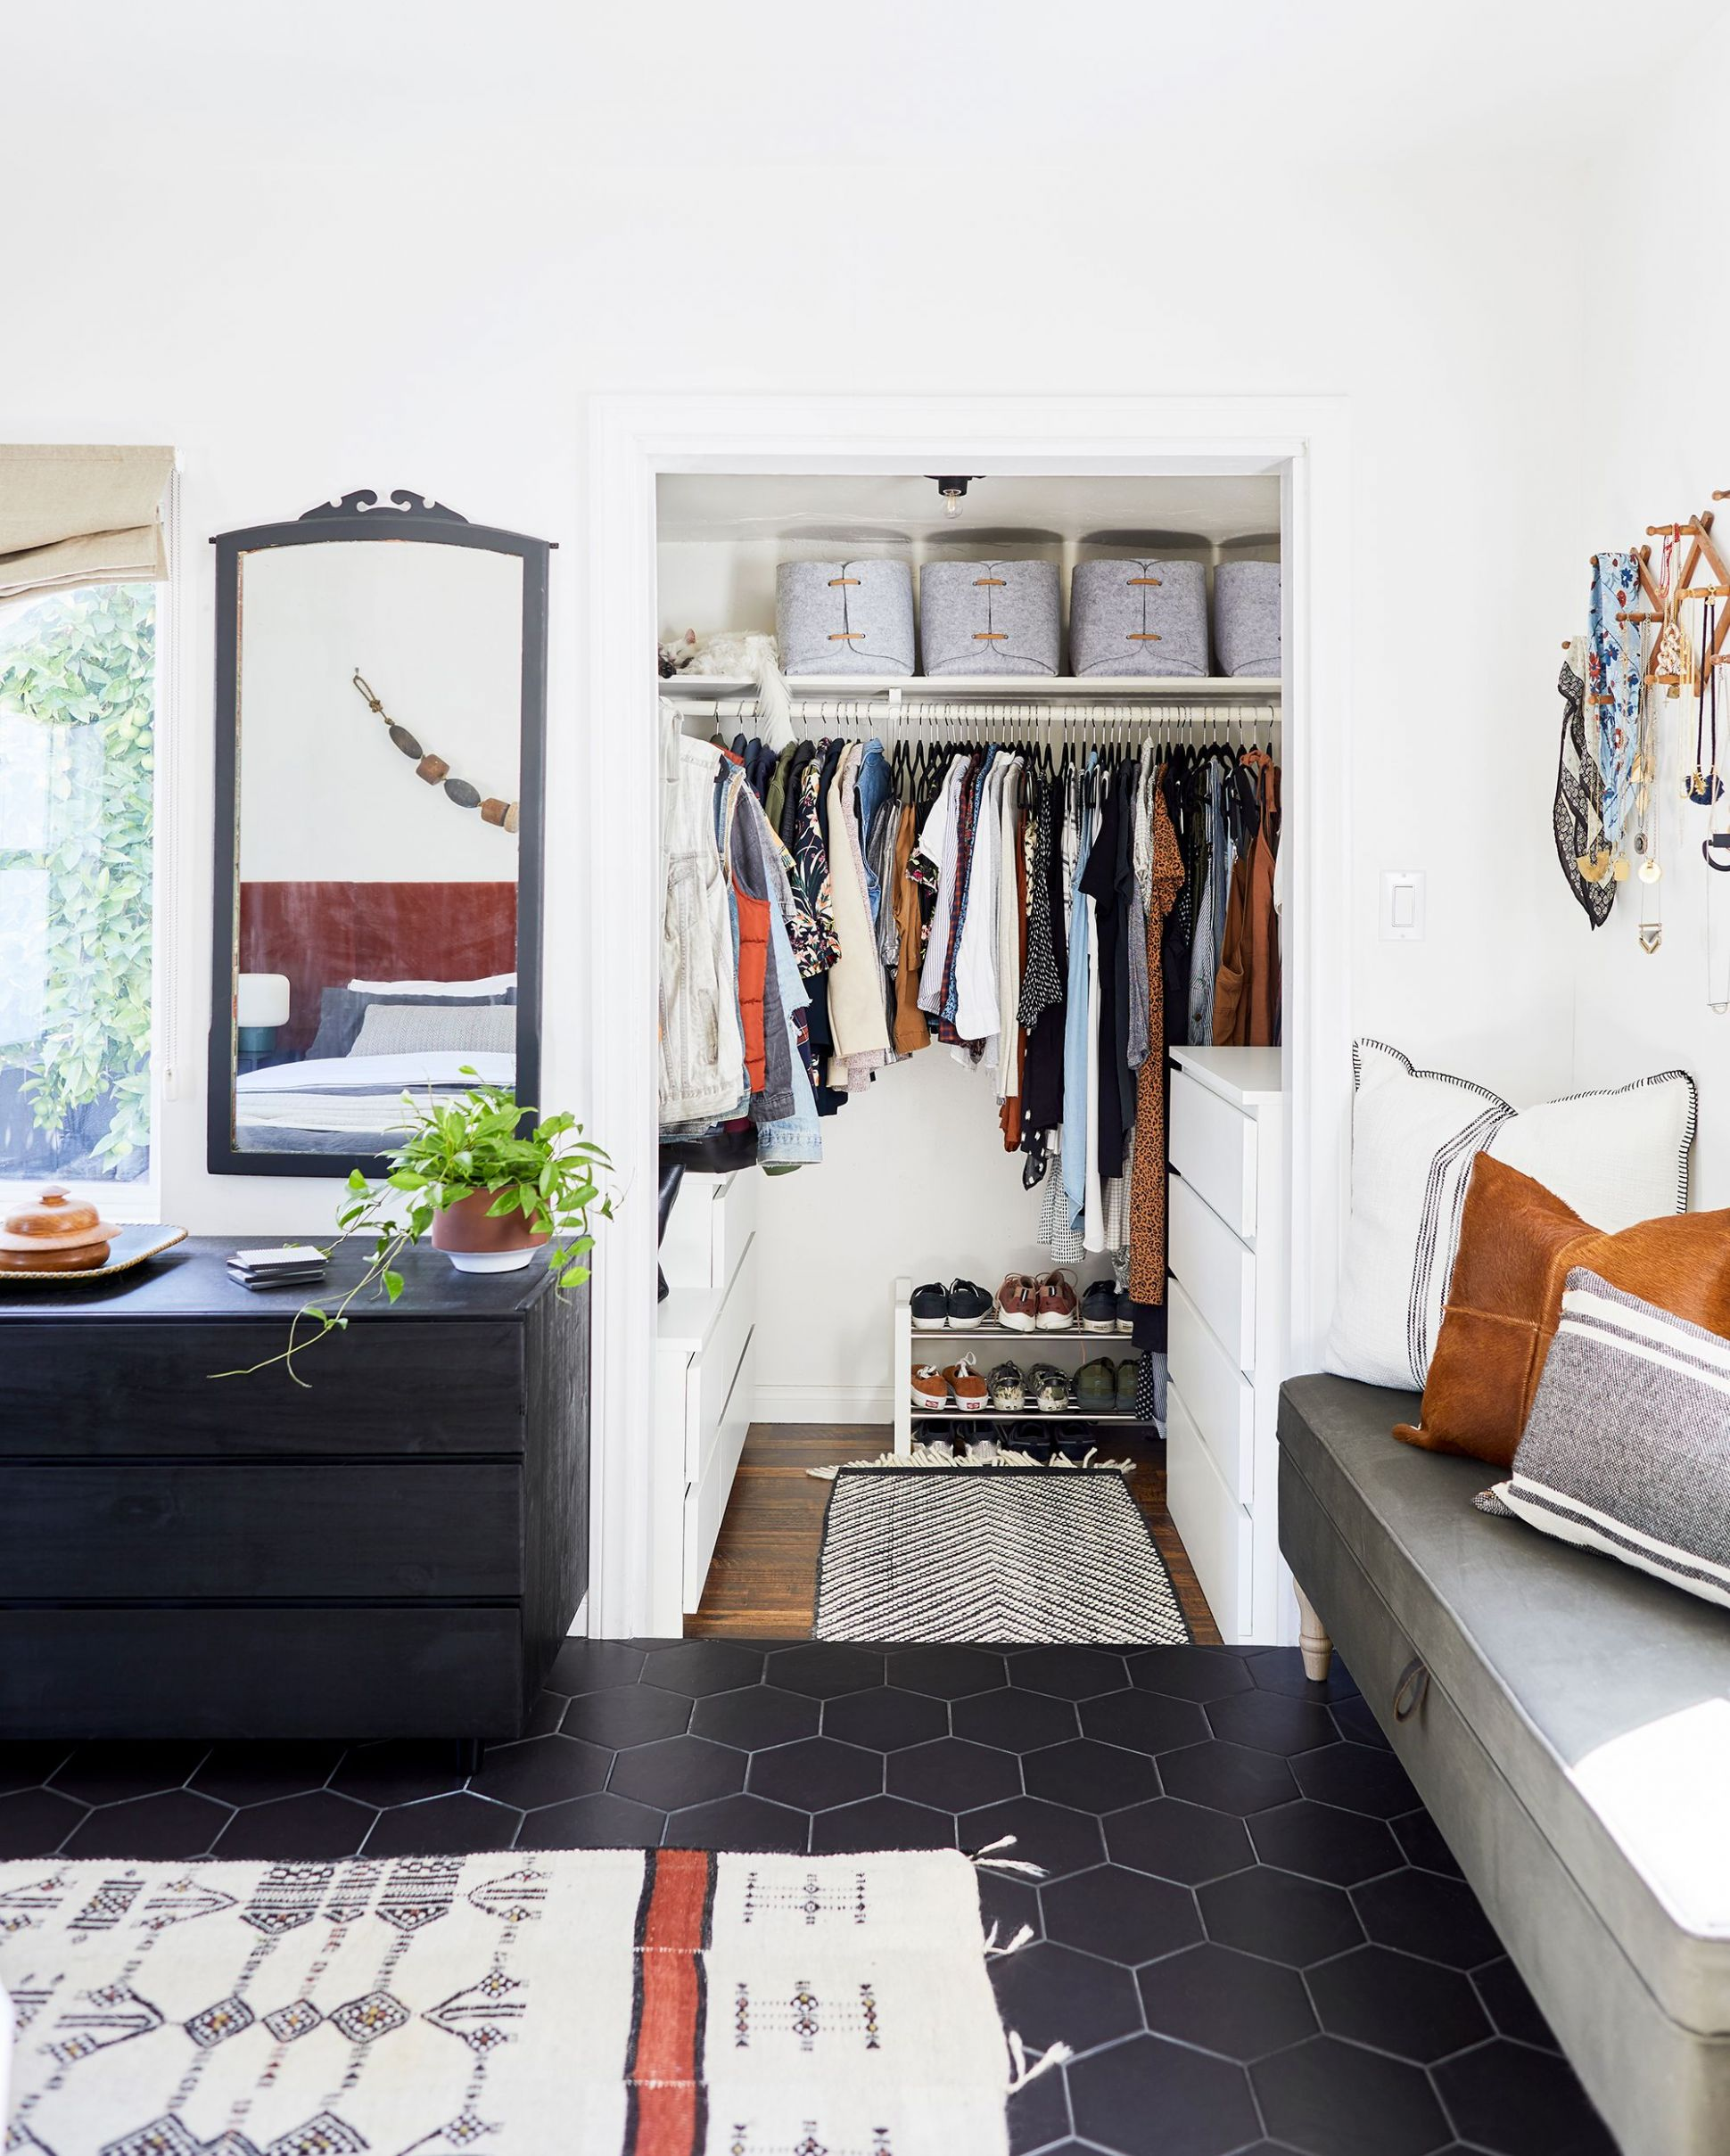 9 Best Small Closet Organization Ideas - Storage Tip for Small ..